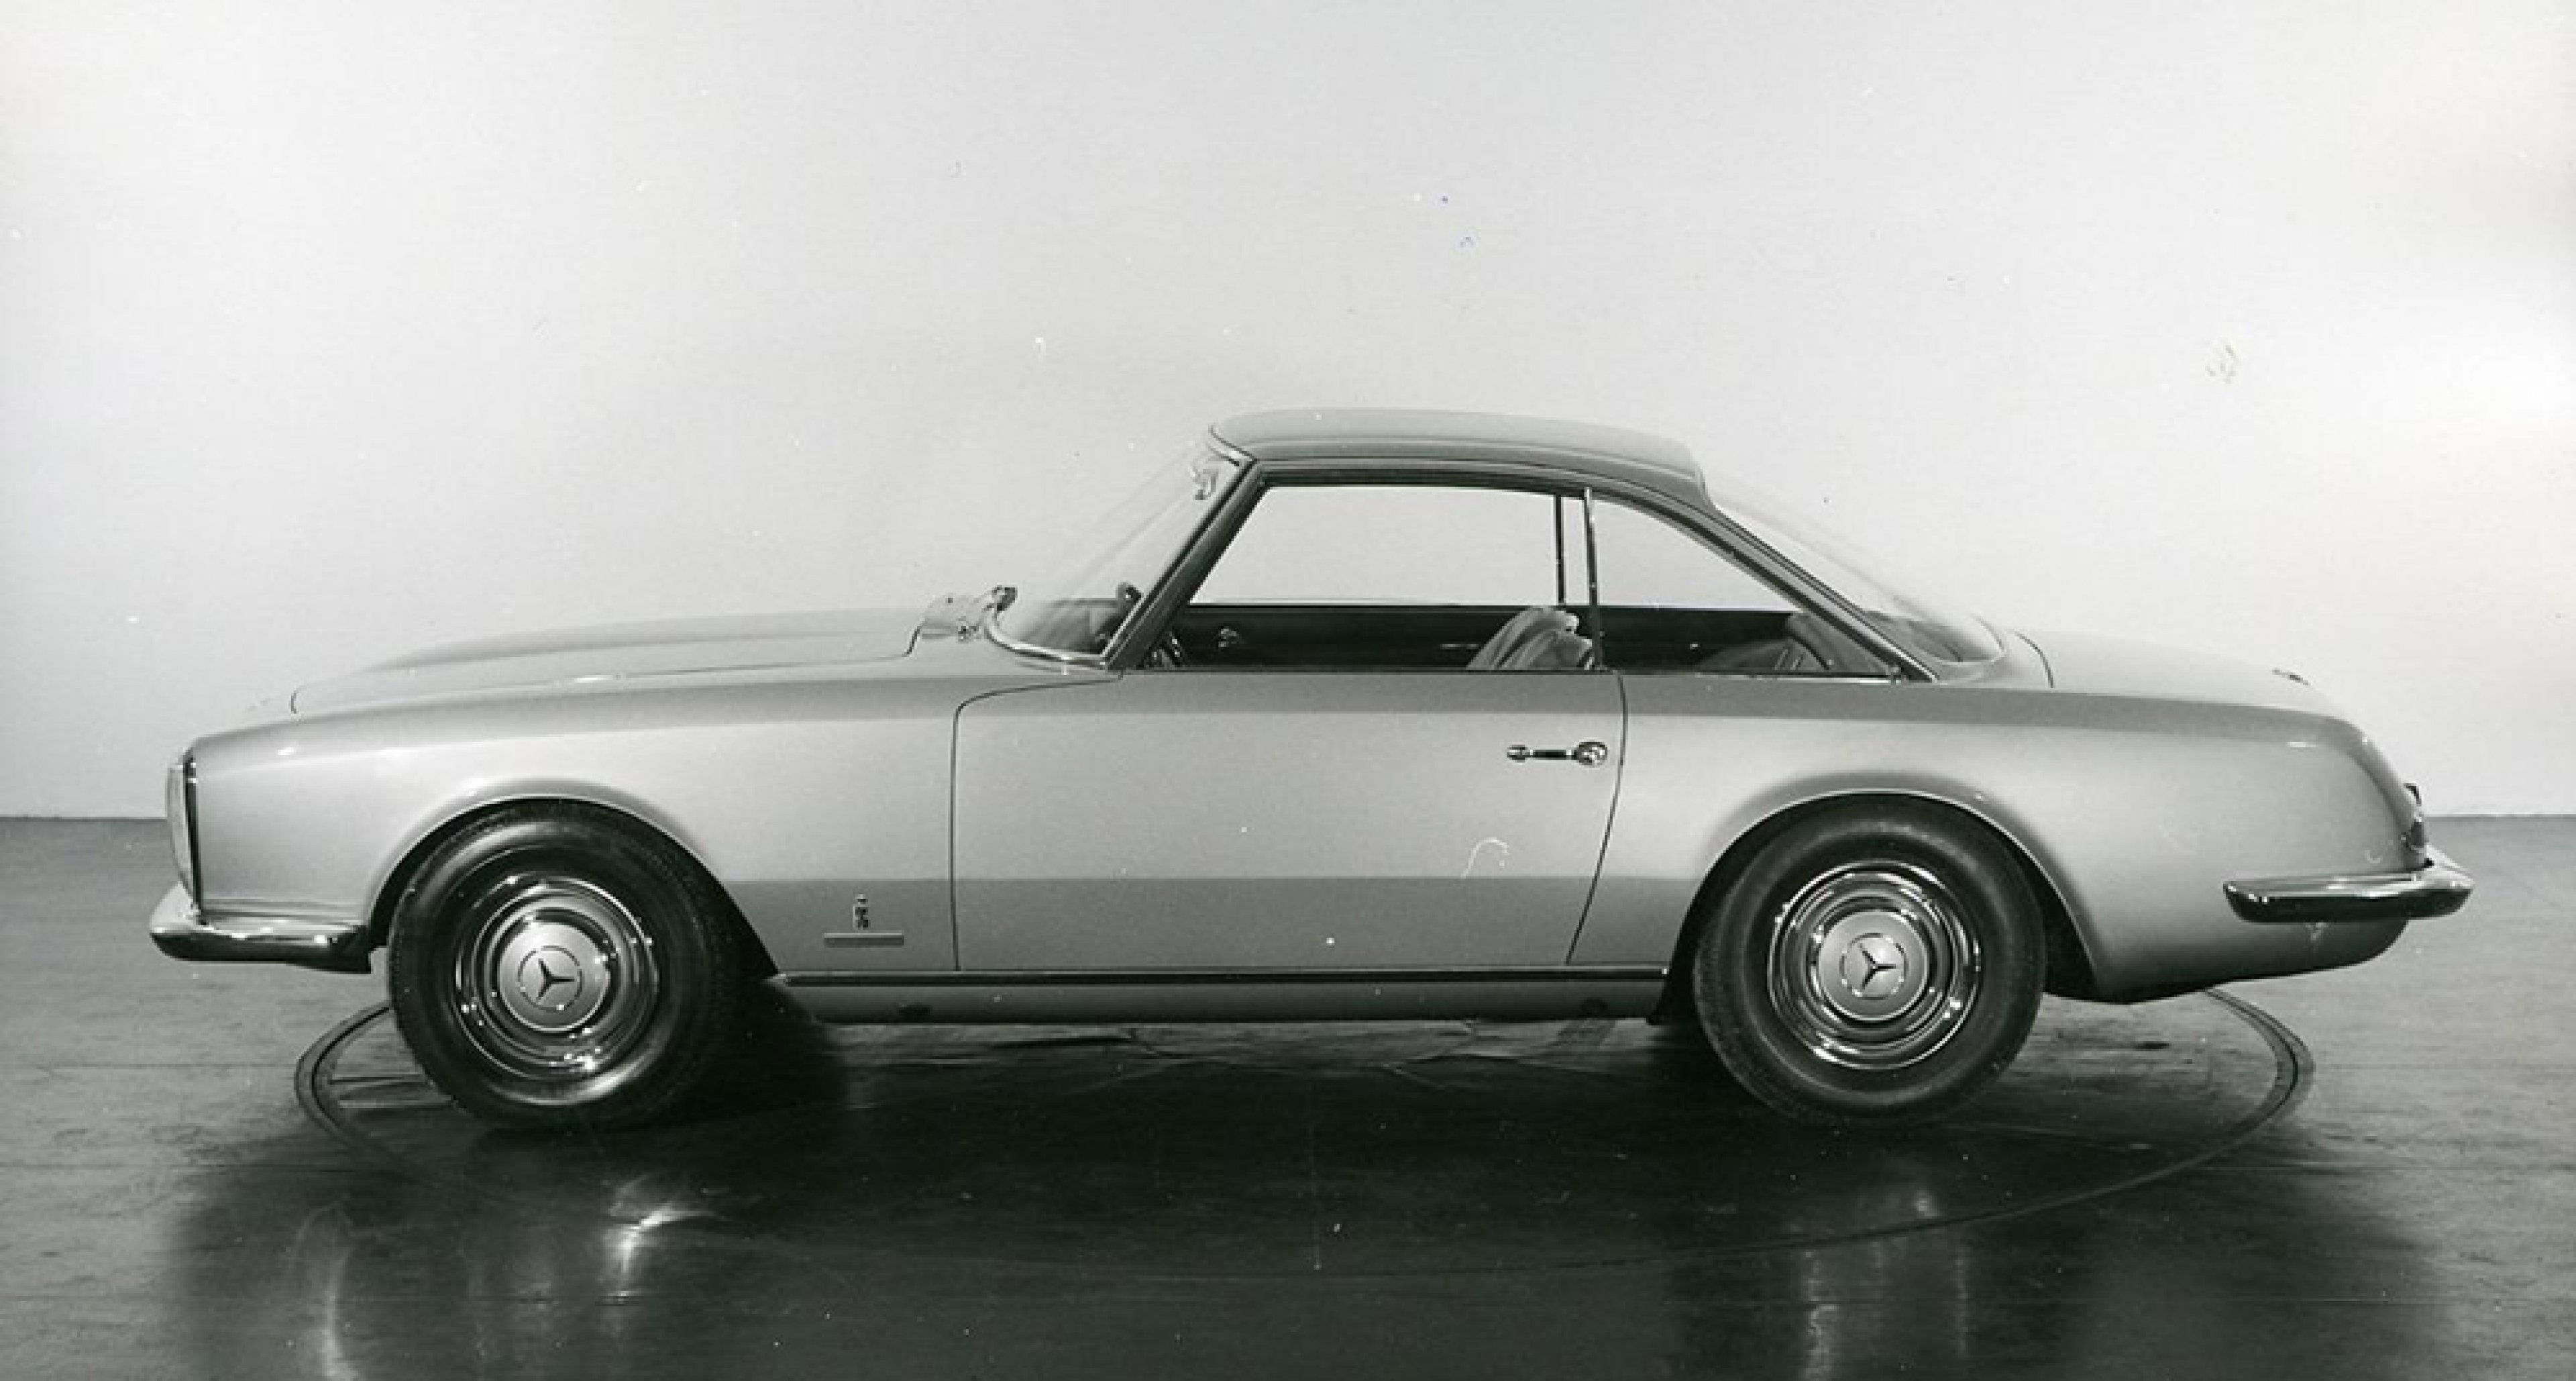 A Mercedes Pagode concept by Pininfarina, displayed at the 1964 Paris Motor Show.